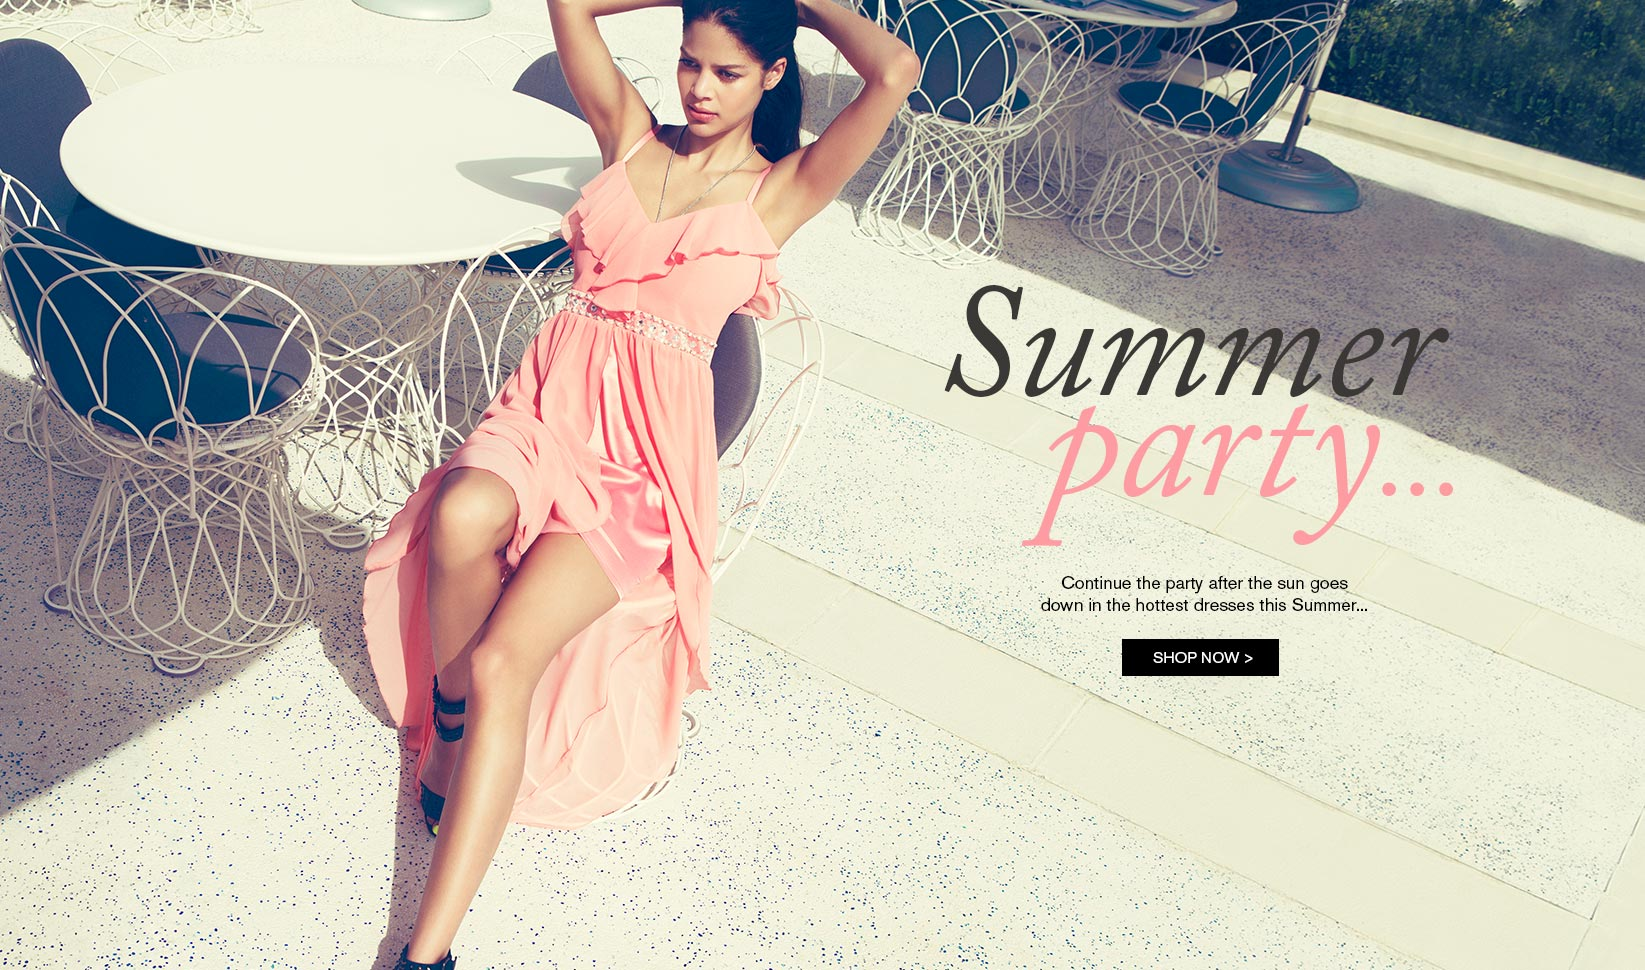 Summer Party image